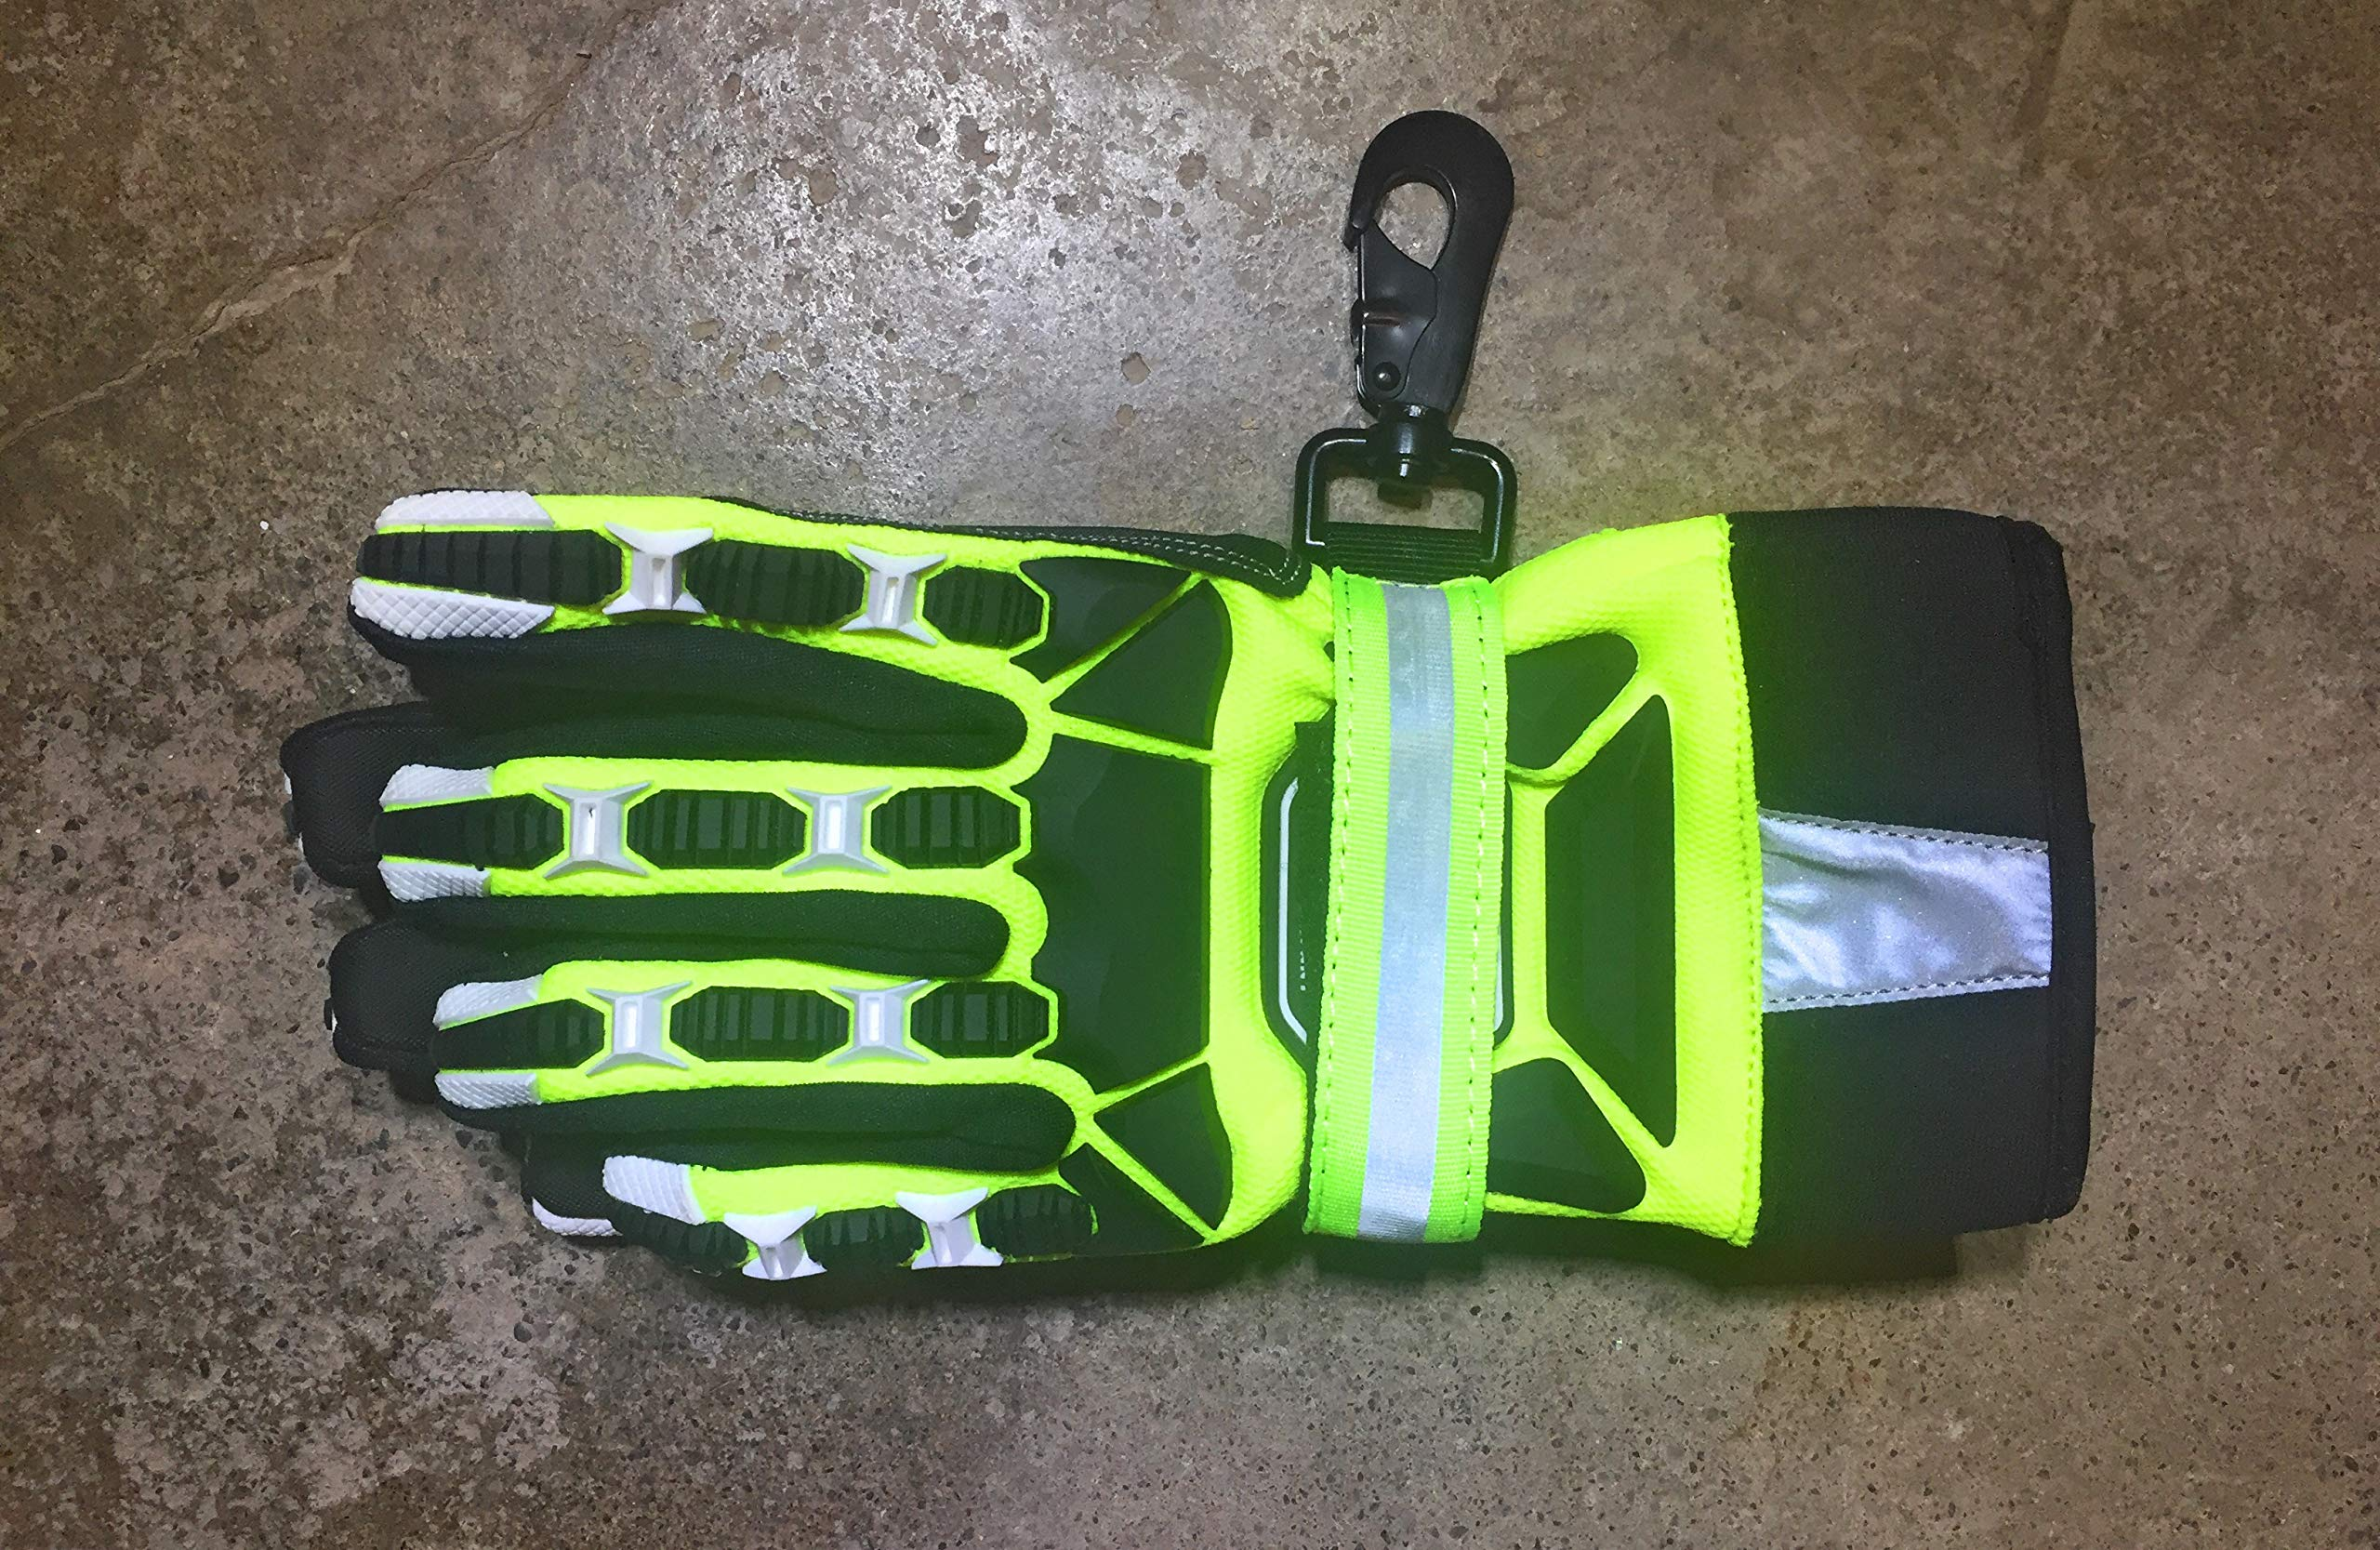 Tools Firefighter Bundle - 1 - Cut Resistant Extrication Gloves (Large) | 1 - Glove Strap (lime Green) | 1 - Drag Strap | 1 - Shove Knife | 1 - Firefighter Log Book (Track training hours, Run activit by Generic (Image #7)